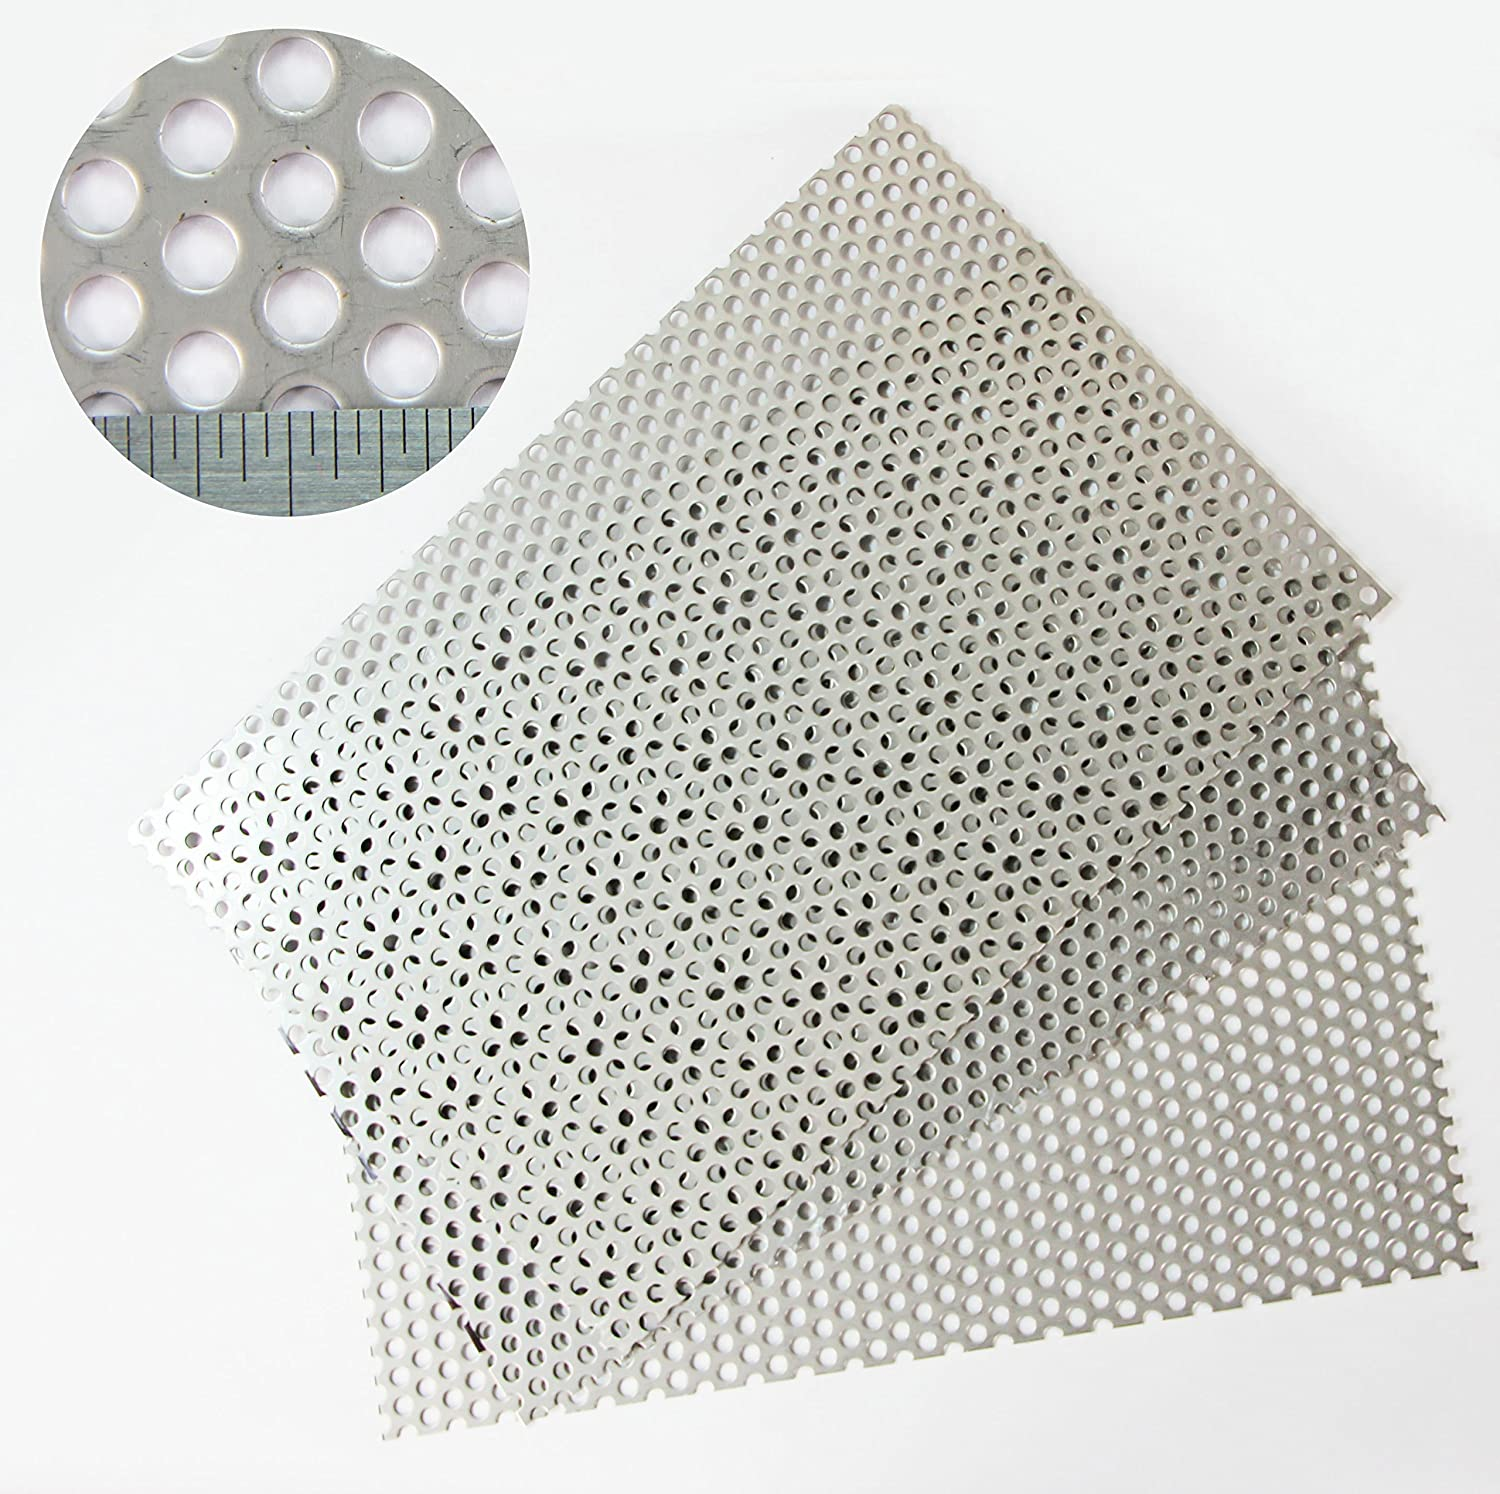 5mm Hole x 8mm Pitch x 1mm Thickness Round SS304 Perforated Mesh Sheet - 3 PACK = A4 Sheet (210 x 300mm) x 3 The Mesh Company